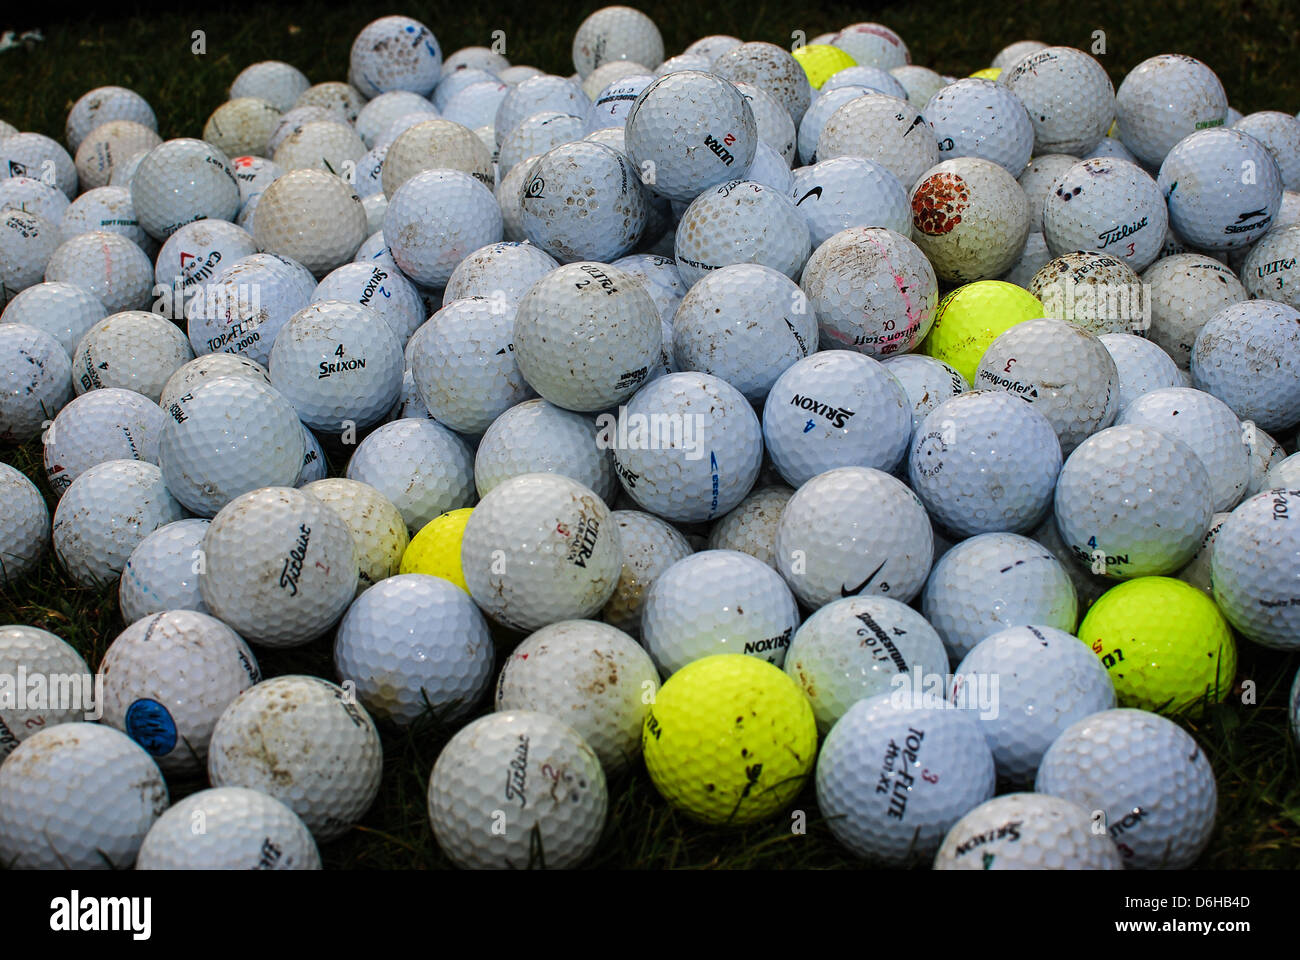 A pile of golf balls ready for practise Stock Photo ...